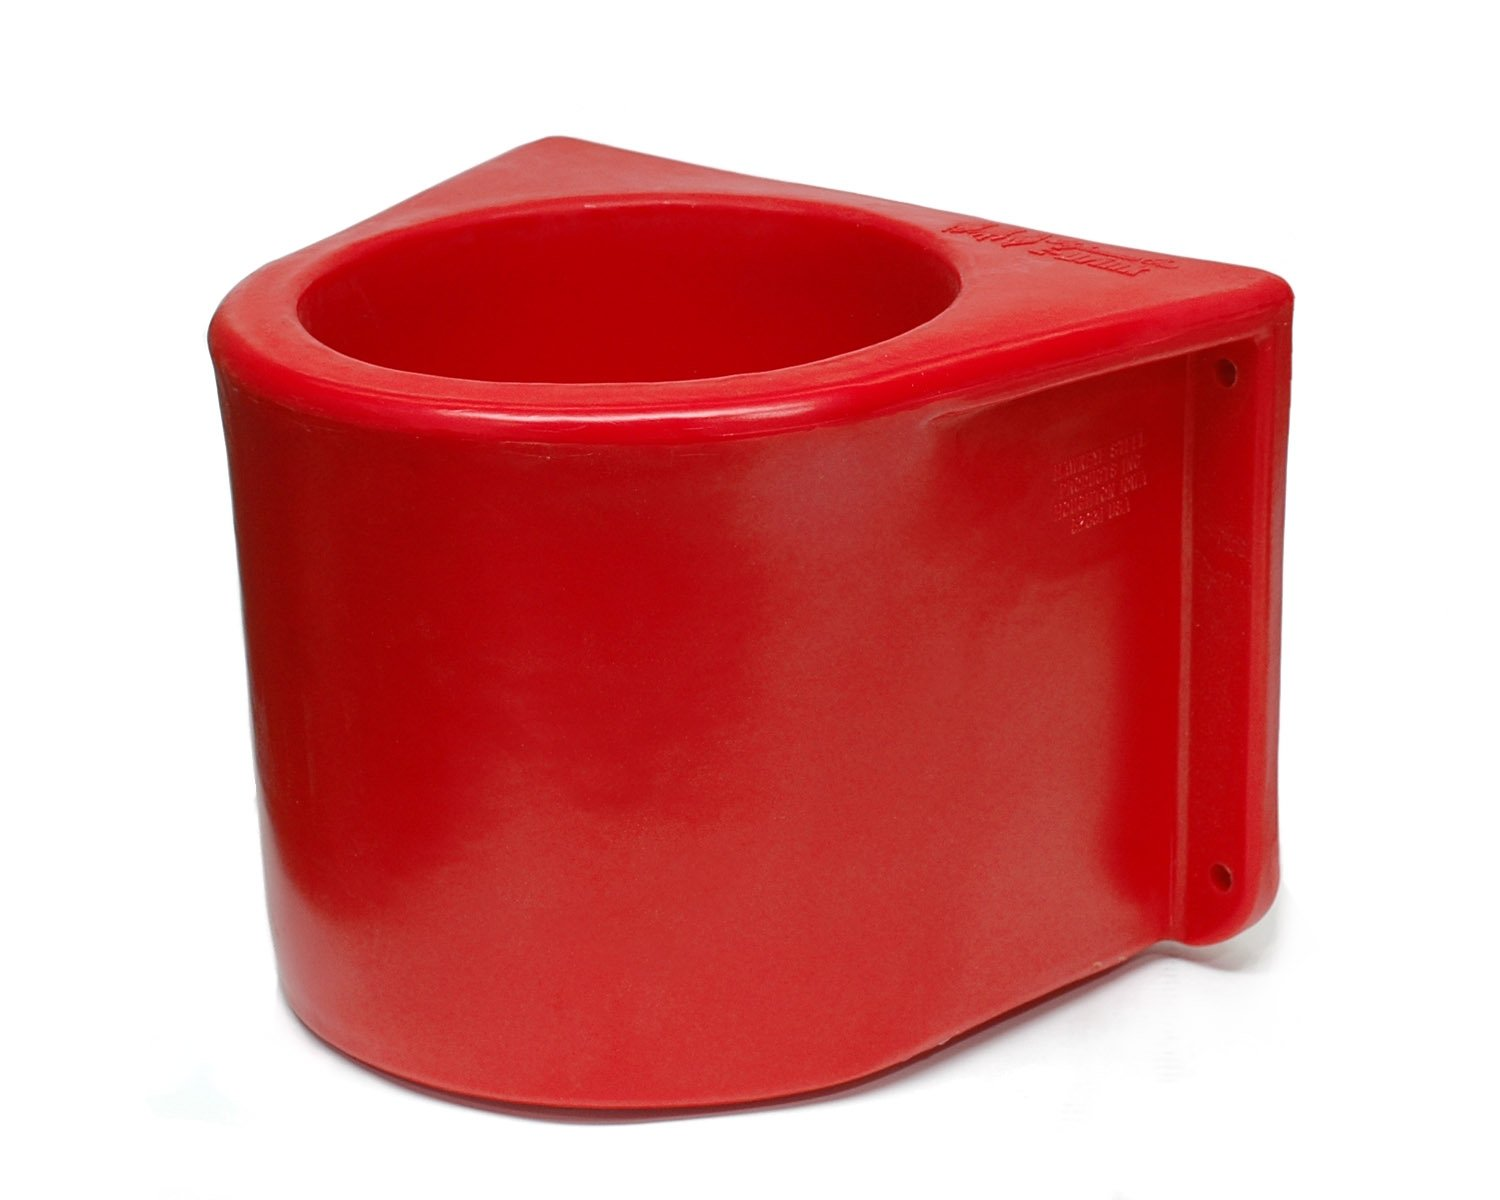 Brower MBH5RLB Insulated Red Horse Bucket Holder with Cover, without a Bucket Hawkeye Steel